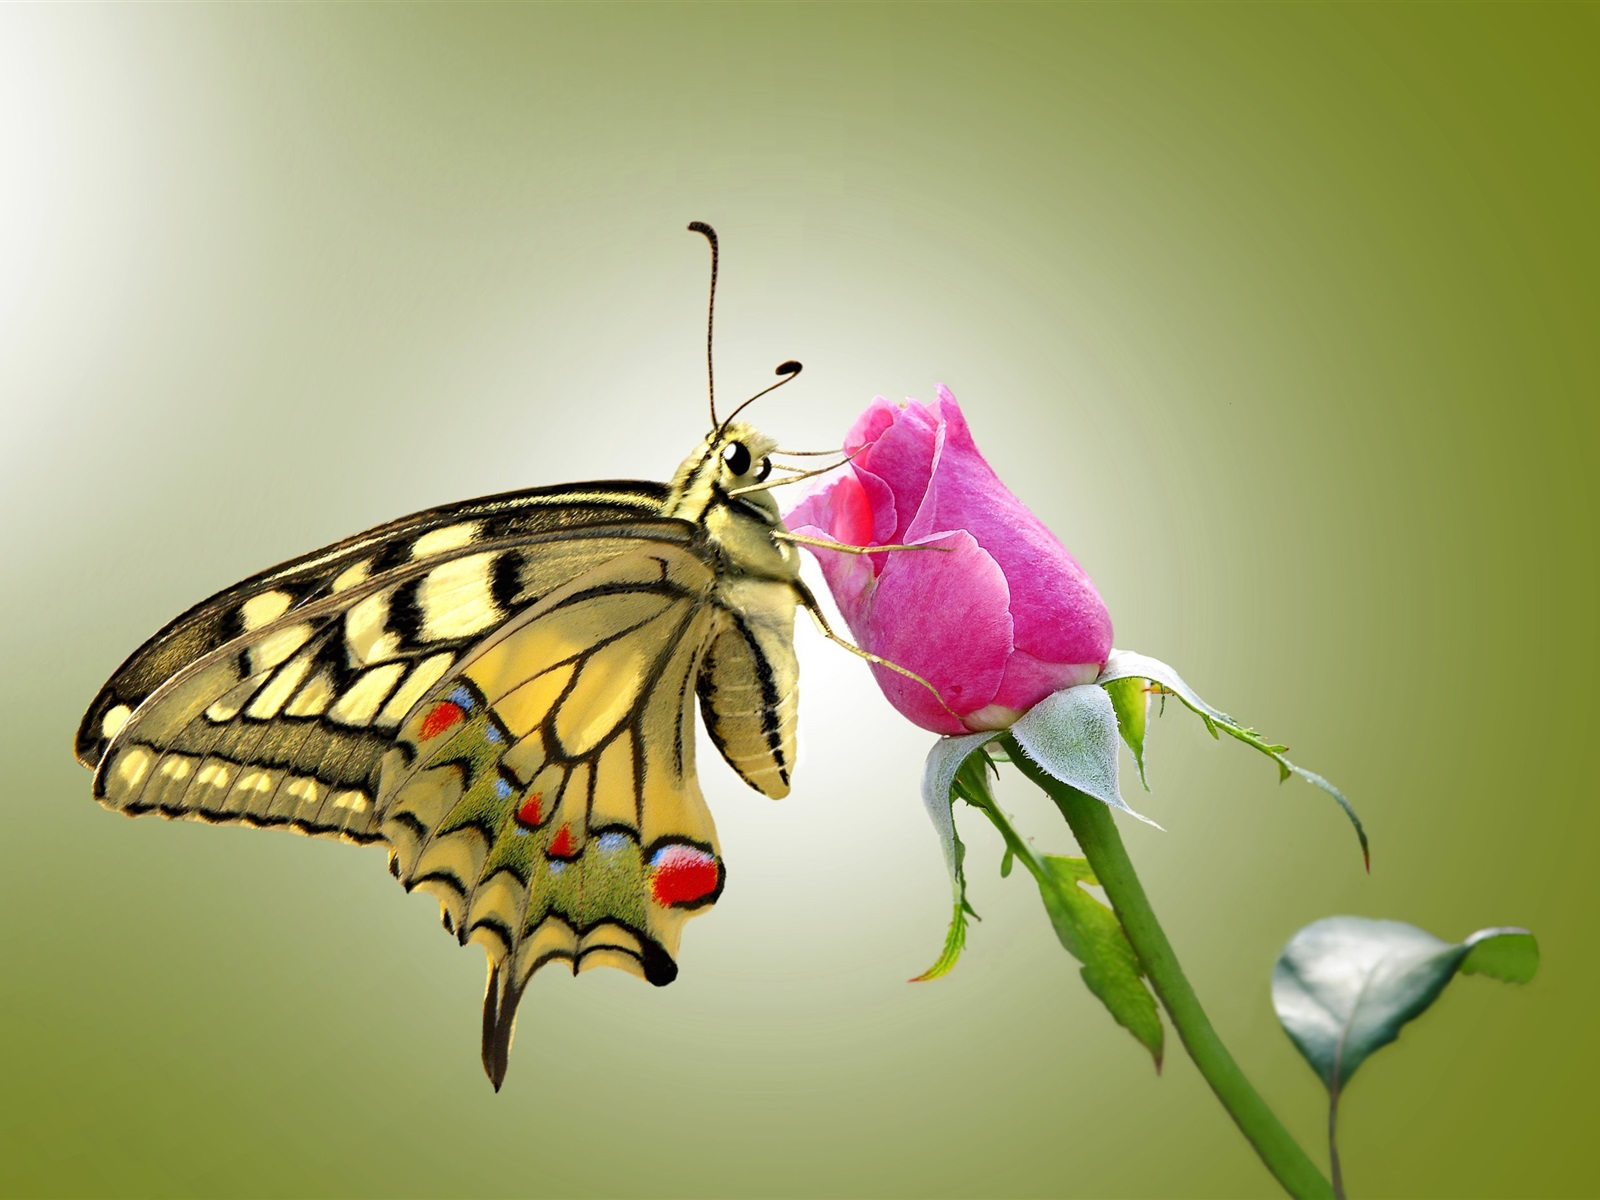 1600x1200 HD Wallpaper Butterfly and pink rose